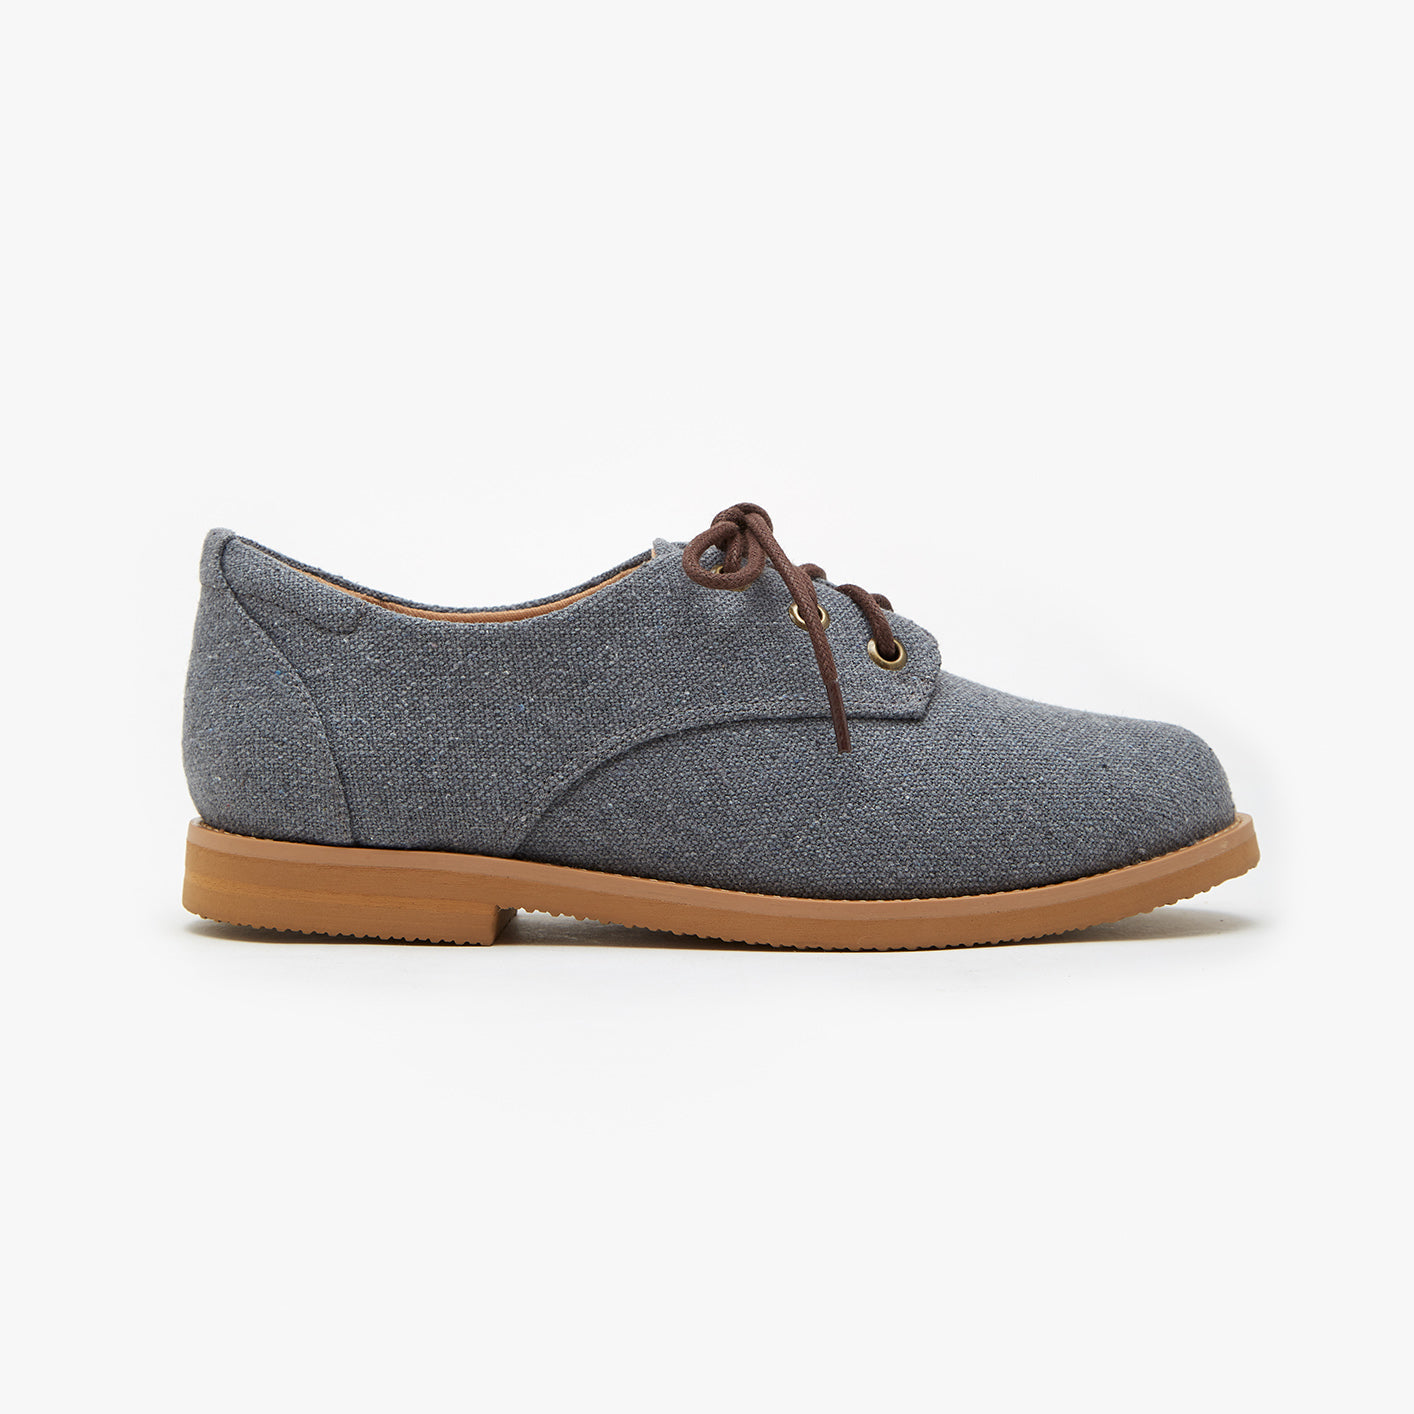 Mono Gris Oxford - Insecta Shoes